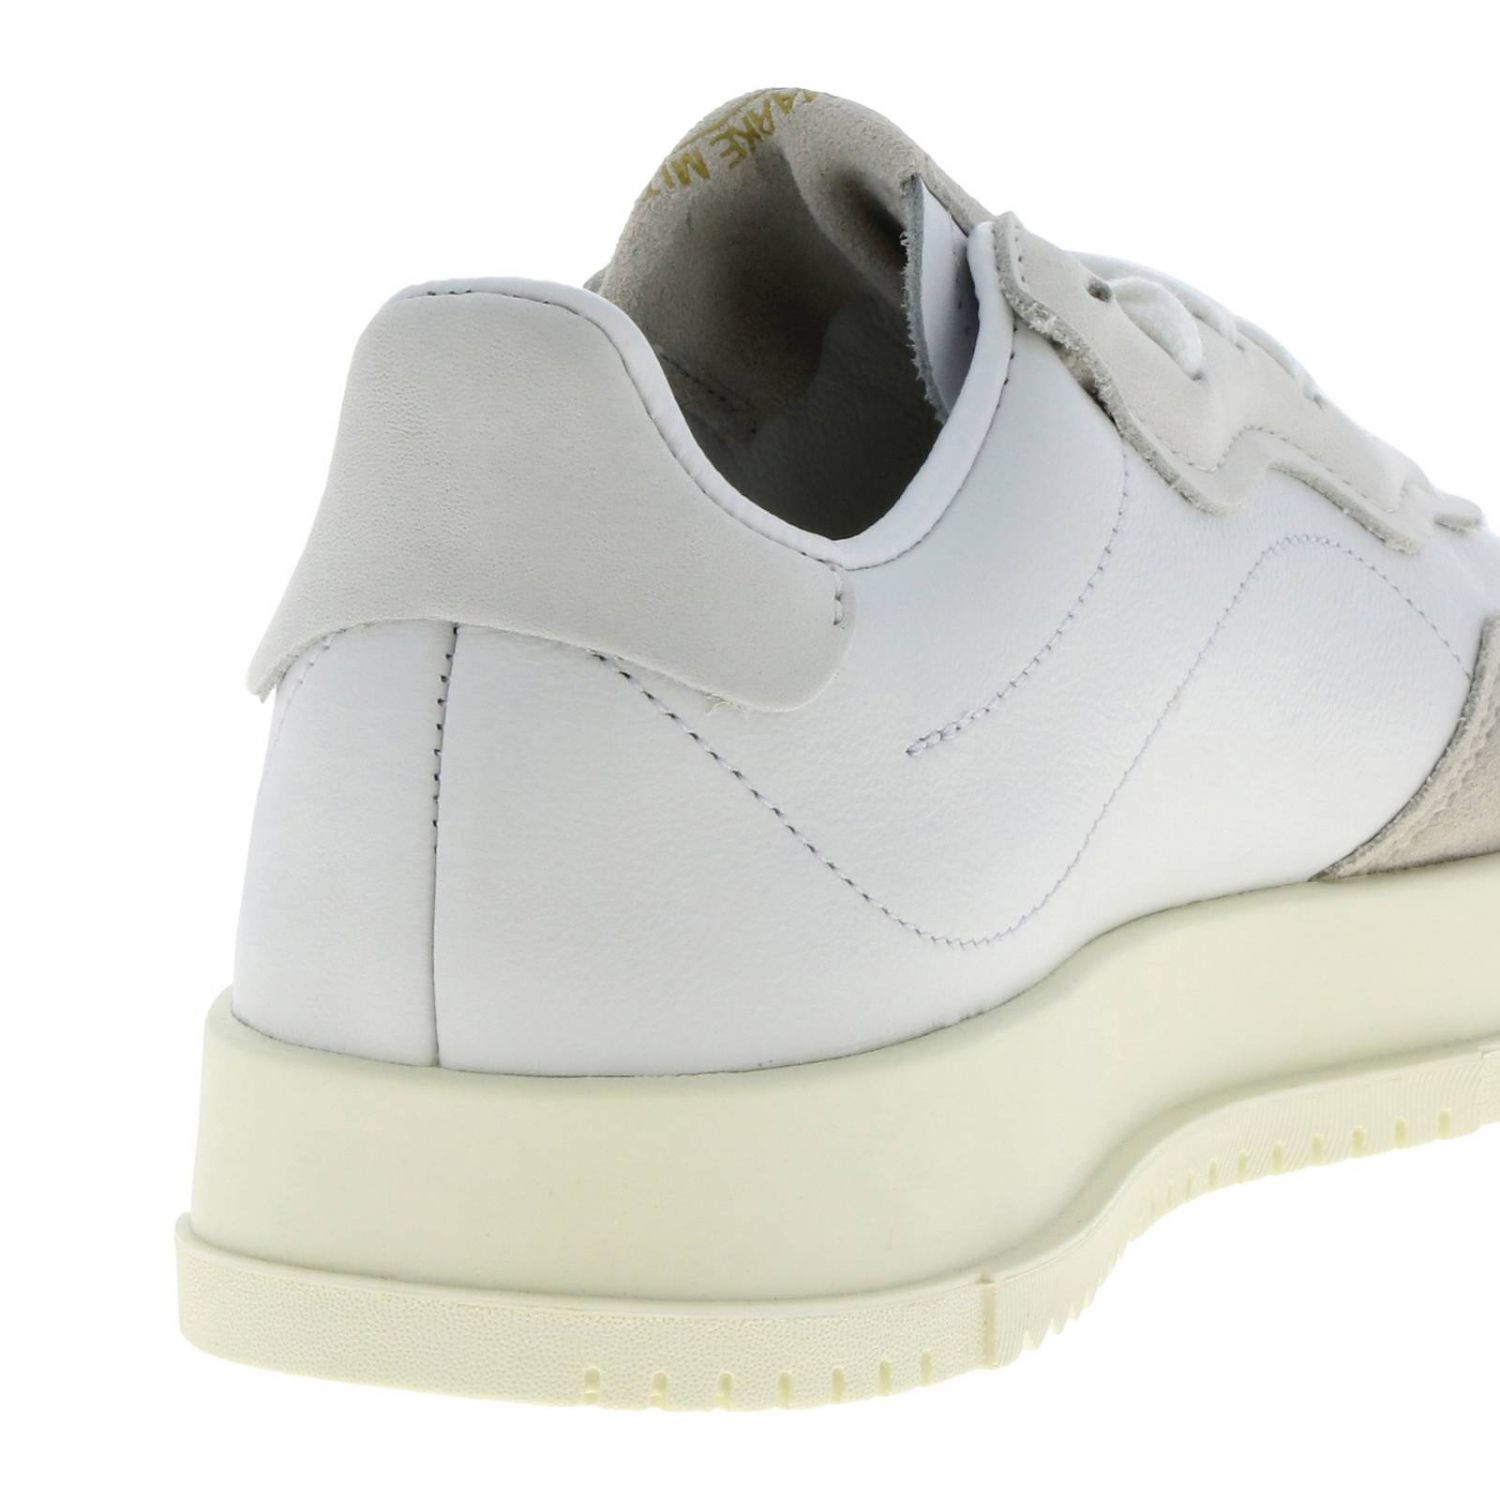 Sneakers Adidas Originals: Originals Originals Sc premiere sneakers in leather and suede white 4